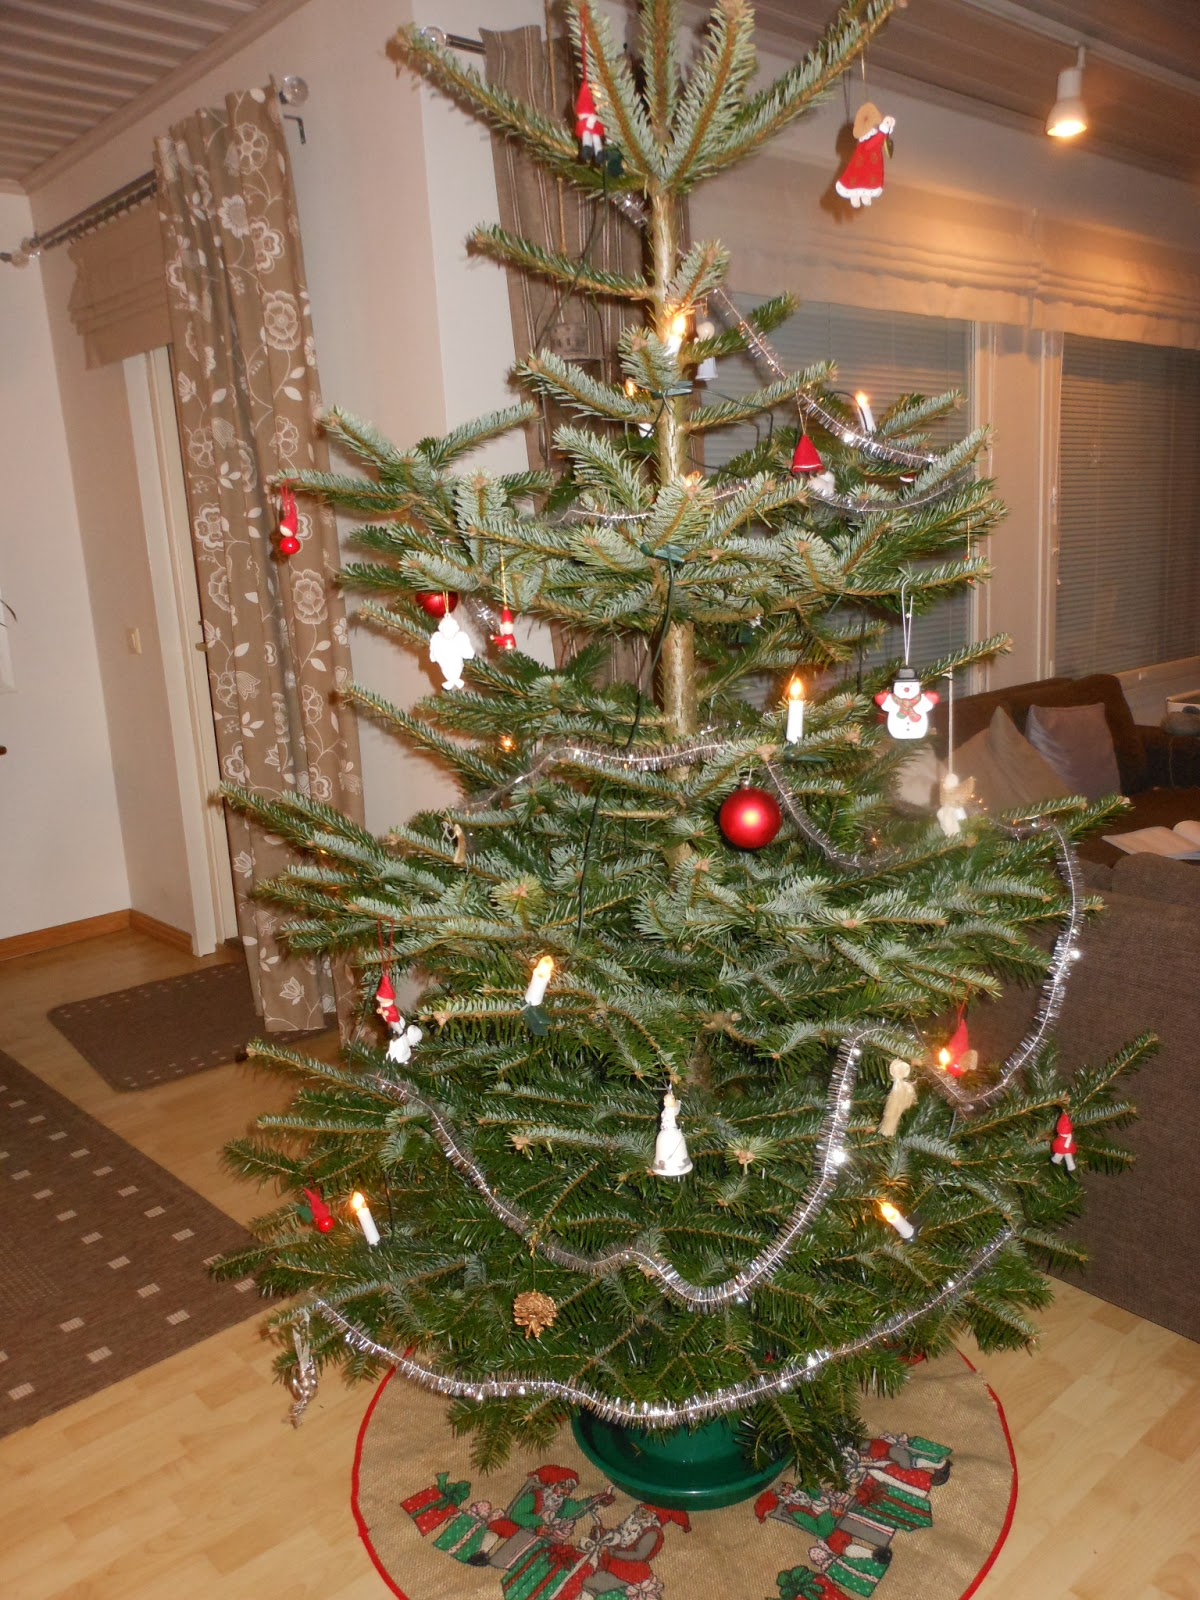 Finland Christmas Decorations.My Journey In Finland Australian Cooking Wintertime